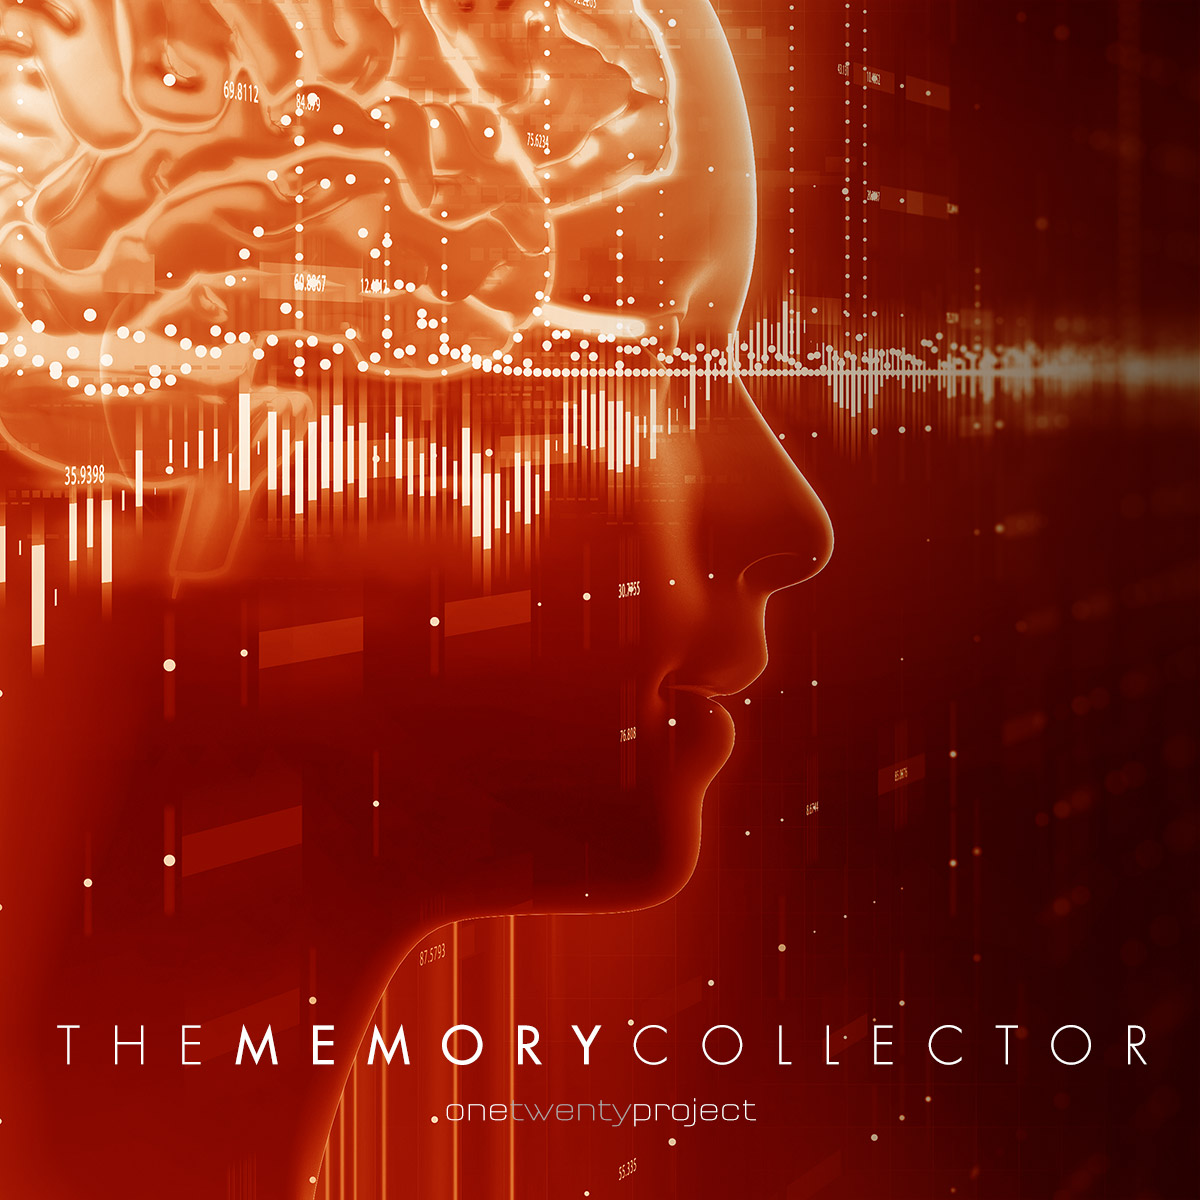 The Memory Collector - New Demo Track by 120 Project